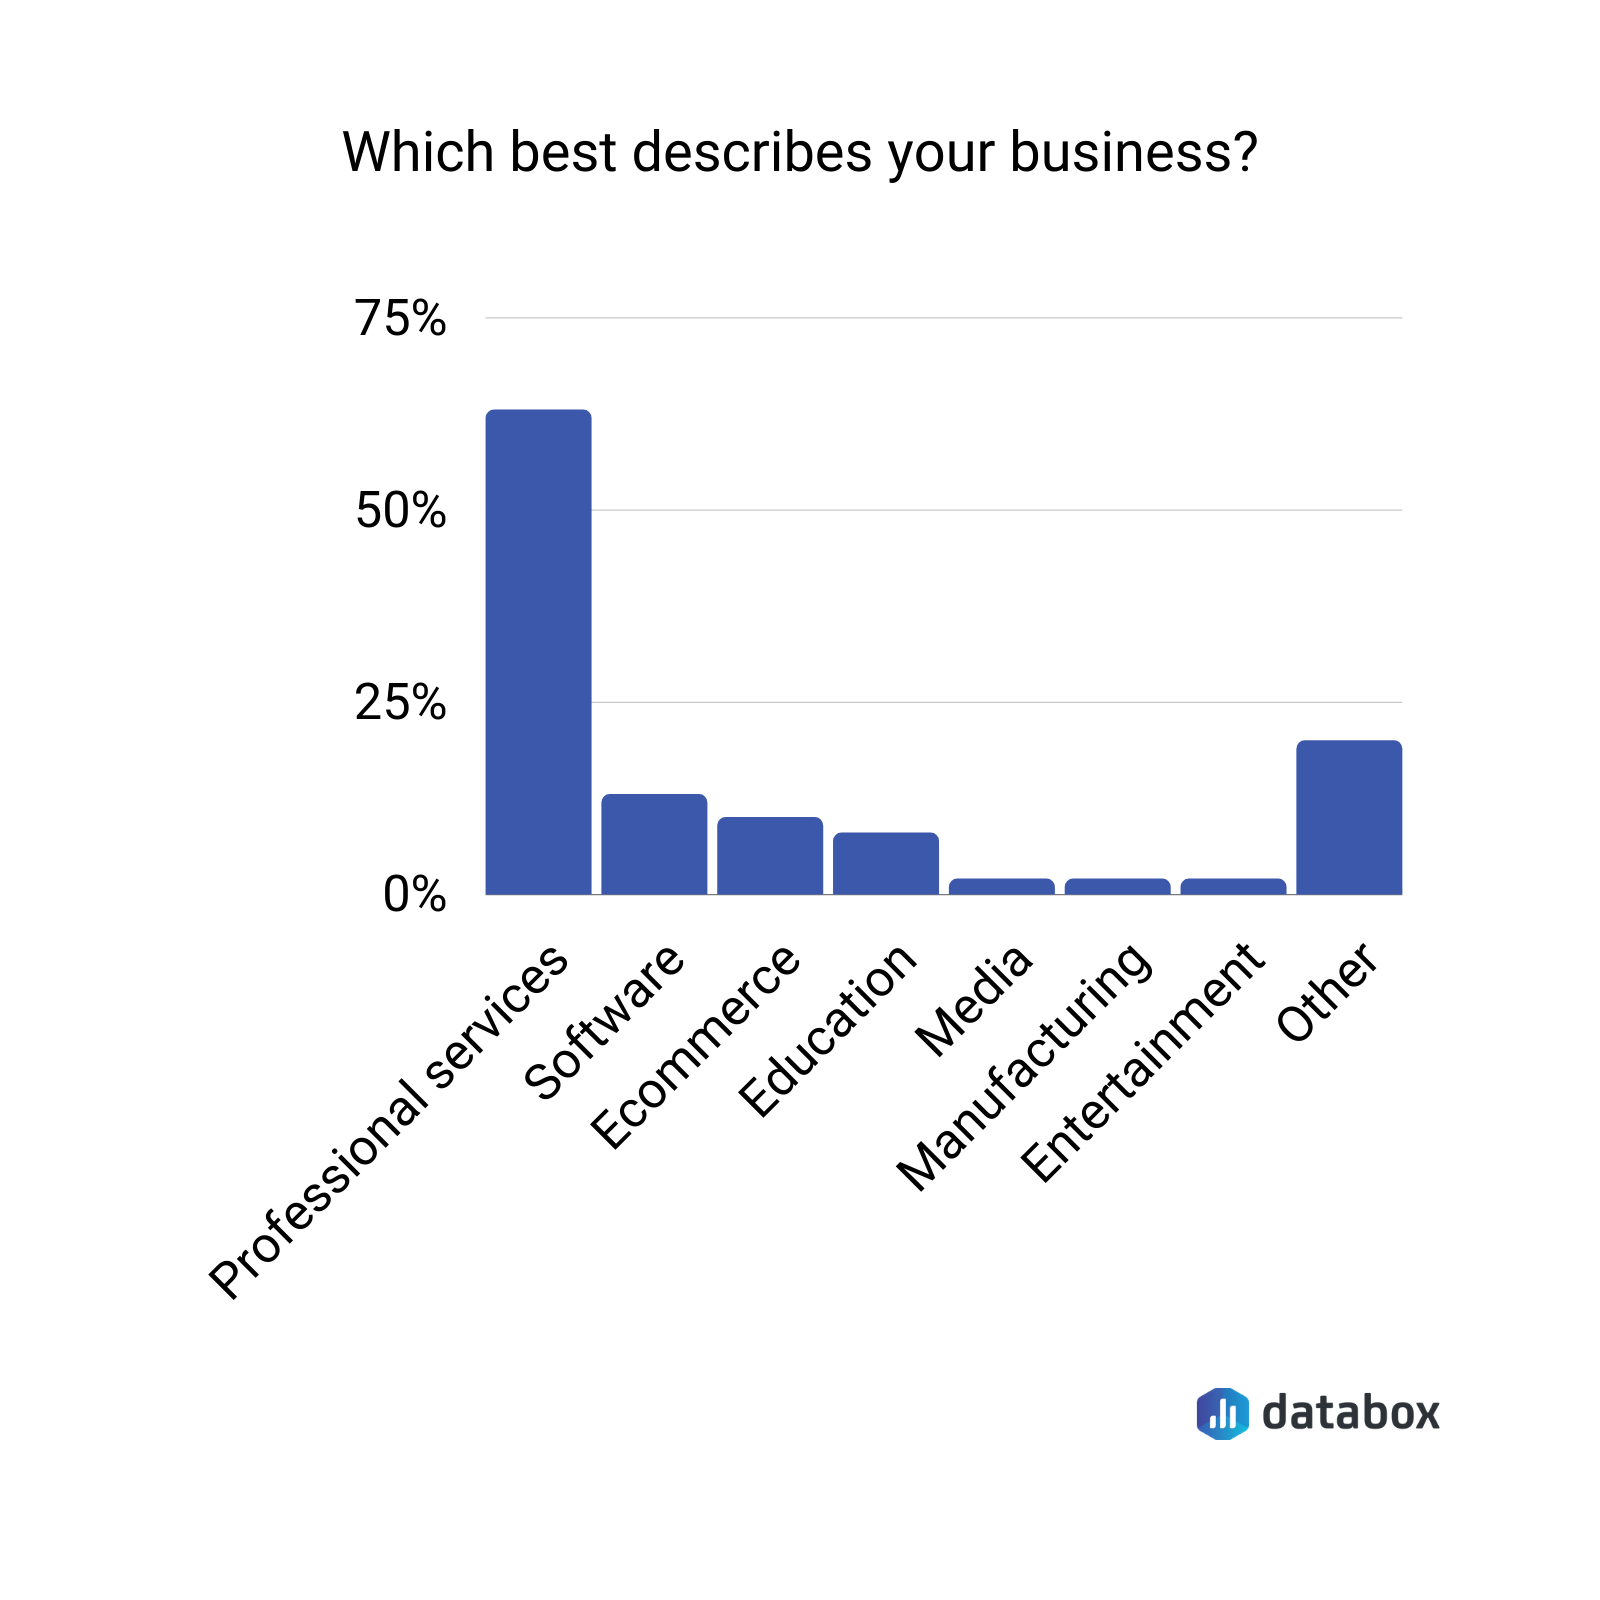 which best describes your business?